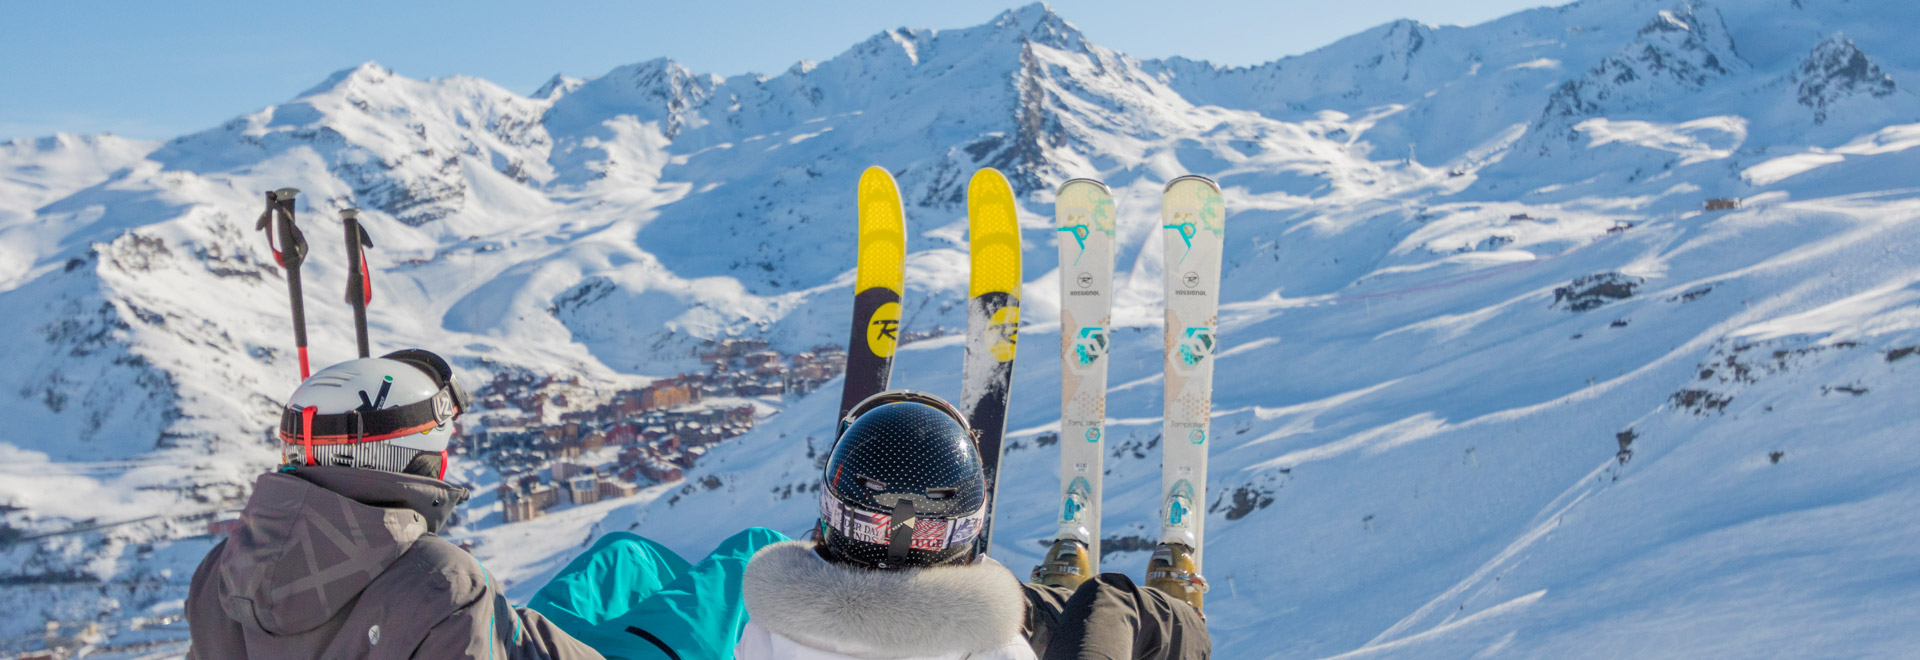 Location Ski Intersport Val Thorens